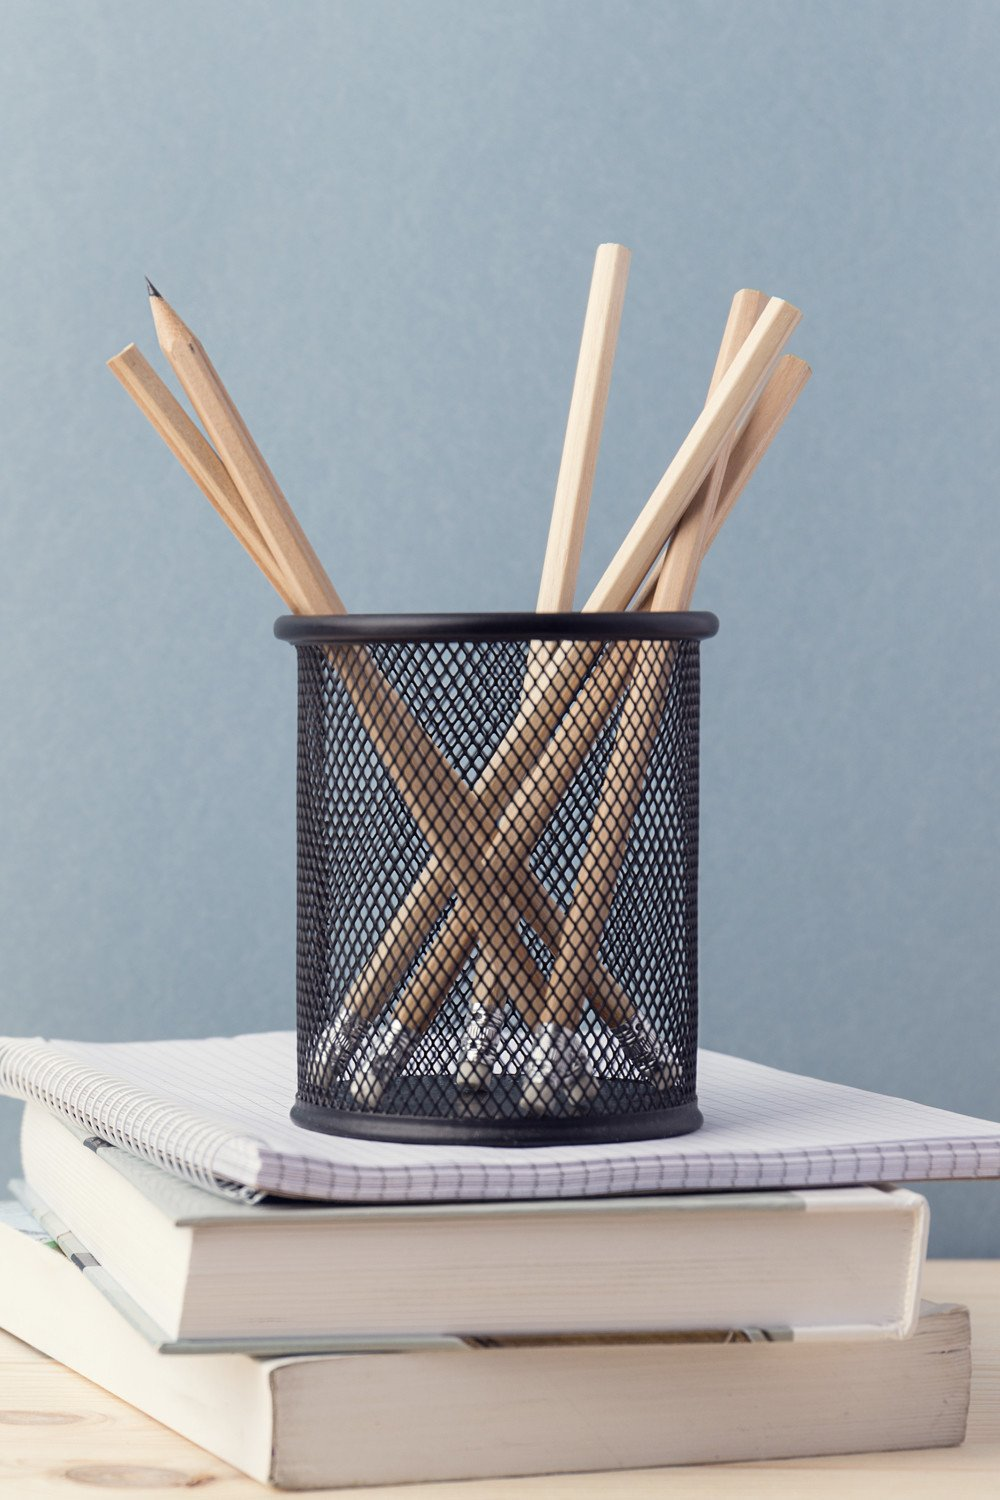 pencils in holder for free homeschool post